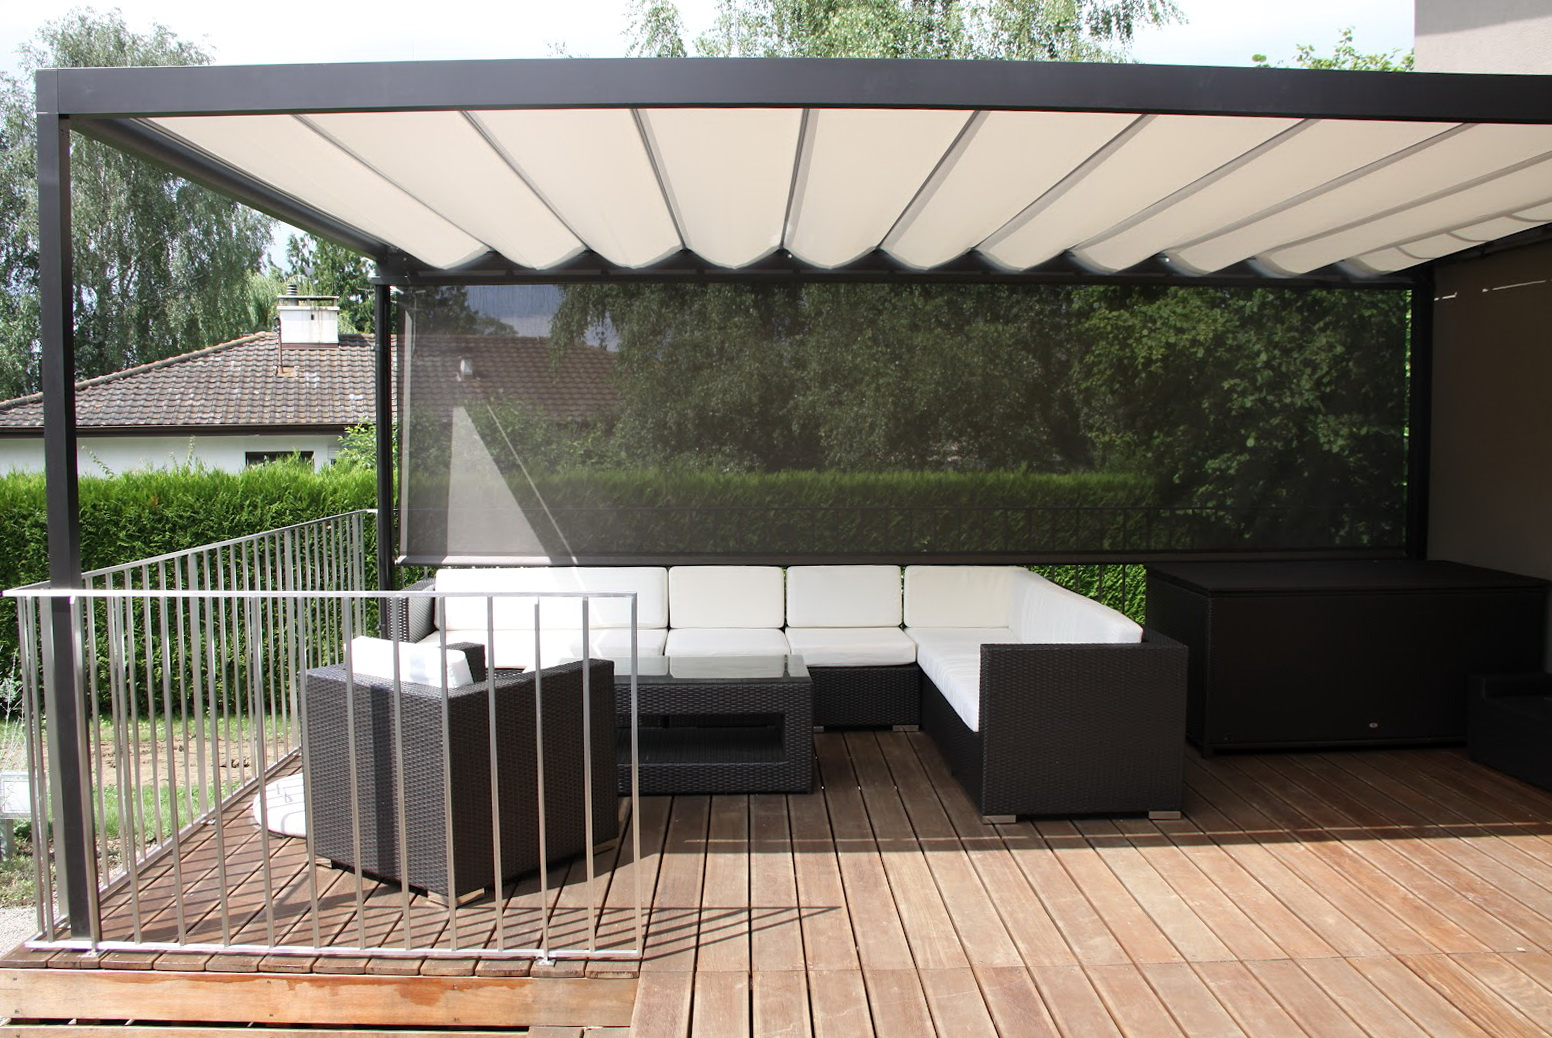 Sun Shade For Deck Home Design Ideas